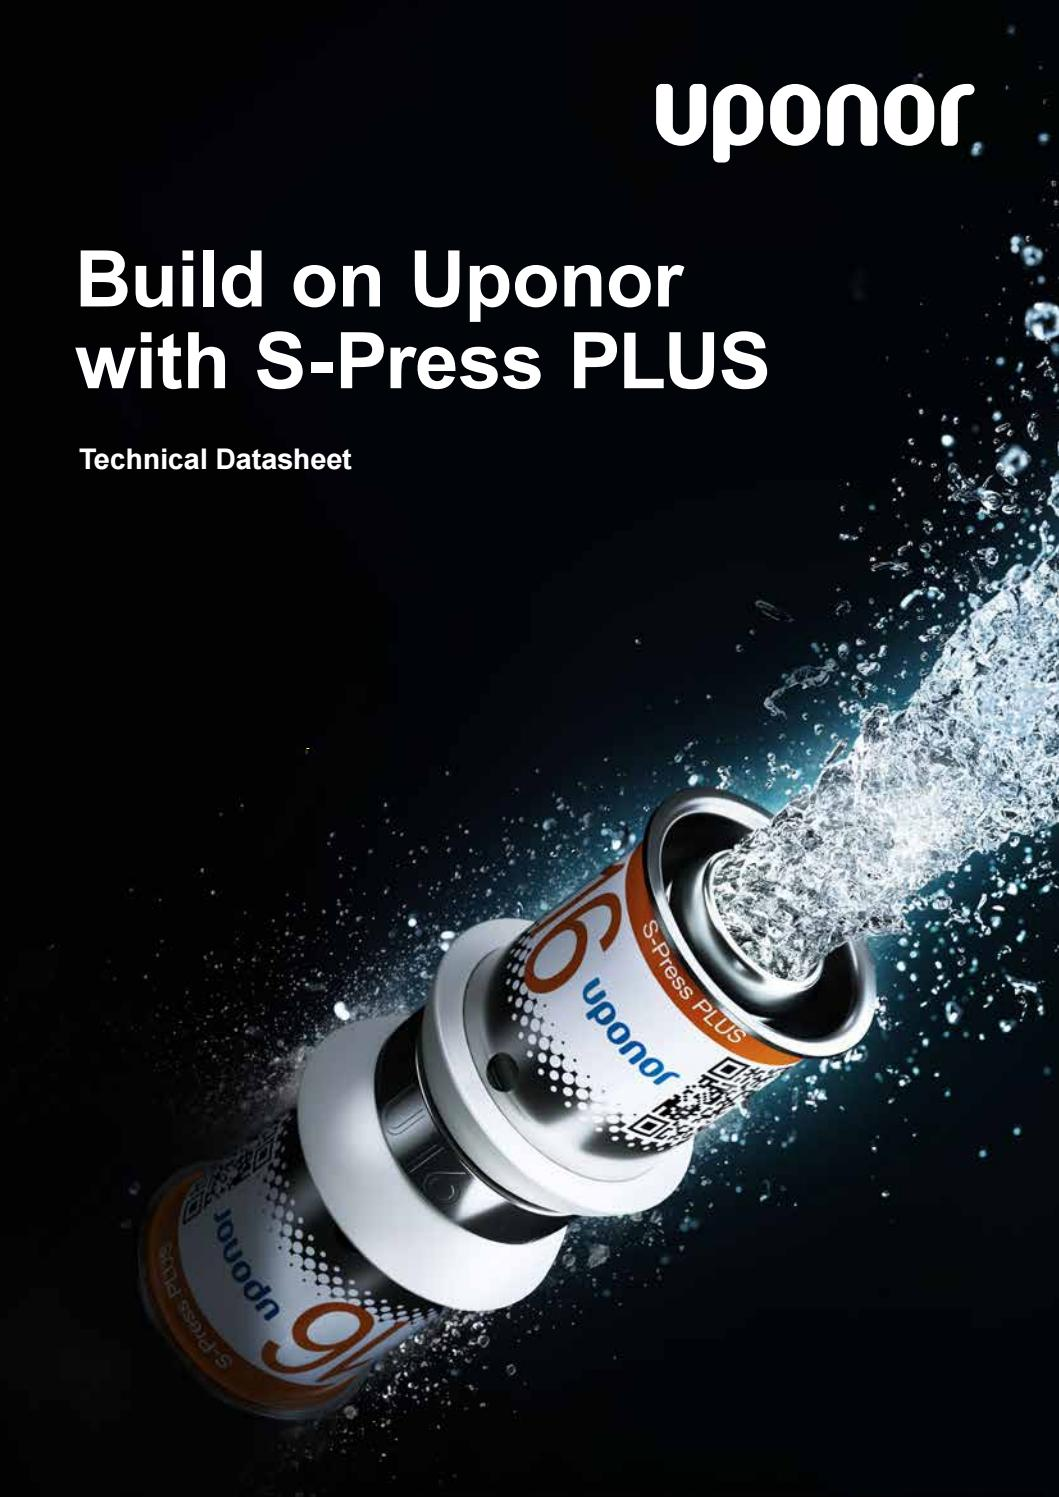 Uponor s press plus technical data sheet by Uponor Germany